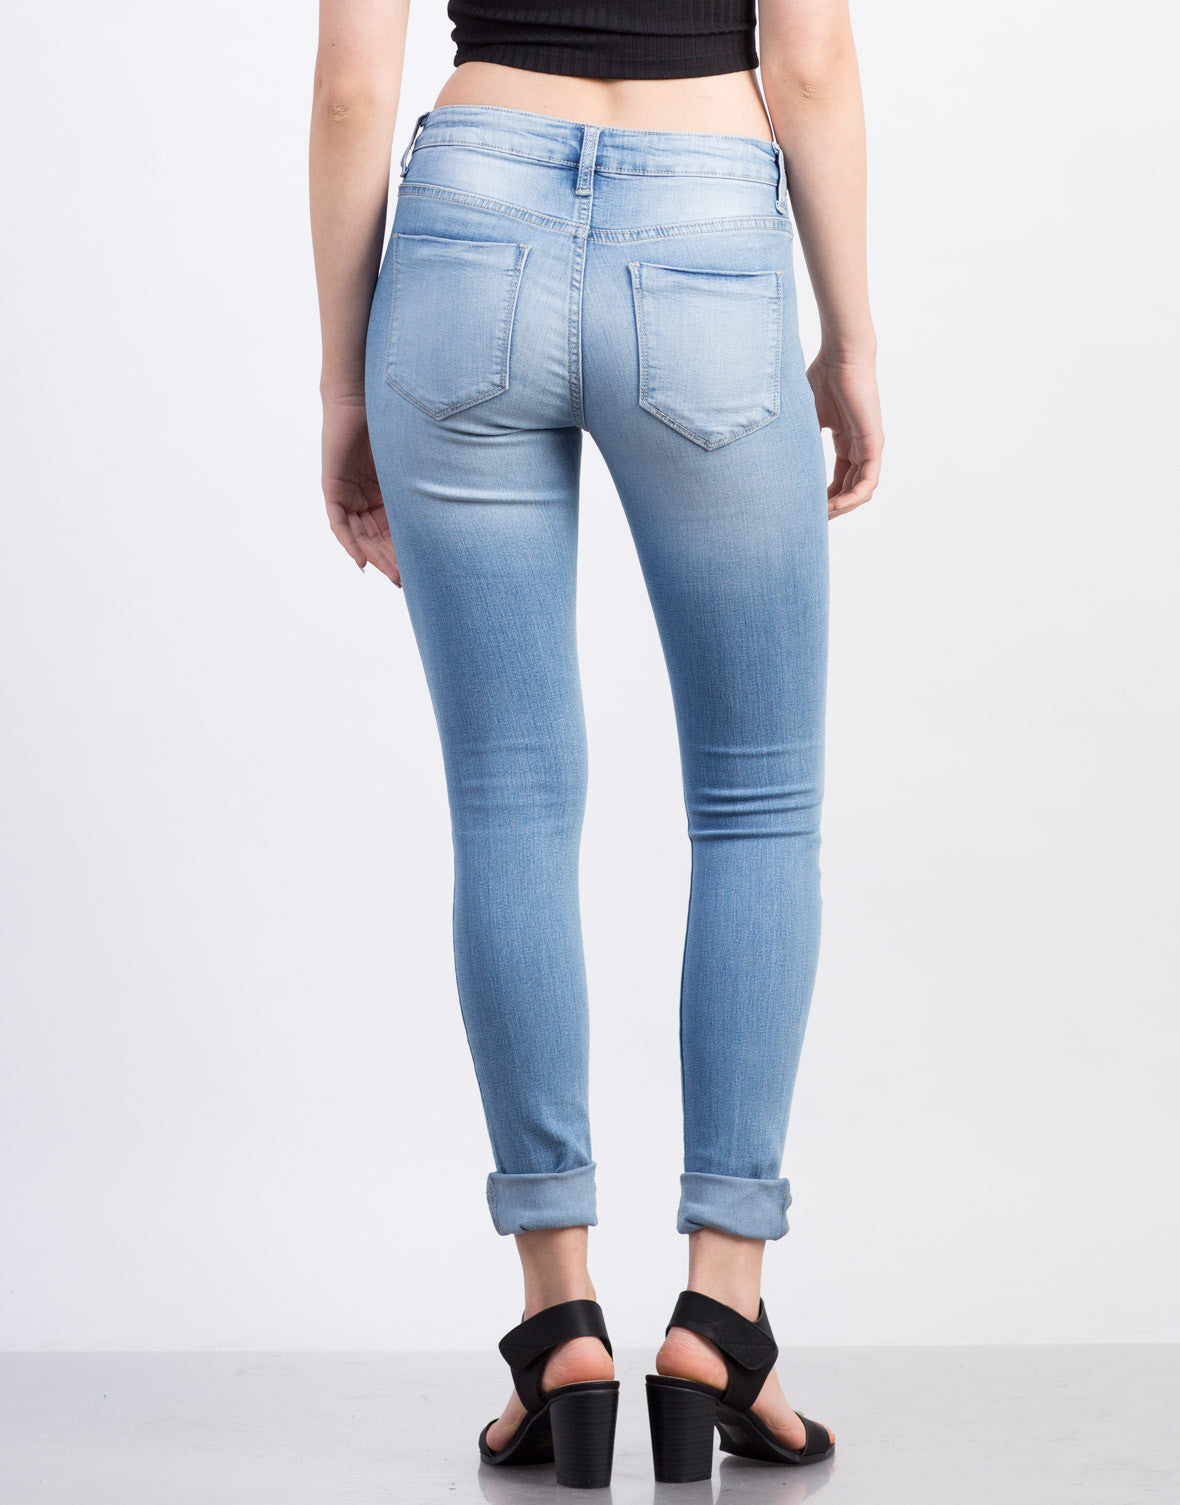 Back View of Light Wash Classic Skinny Jeans